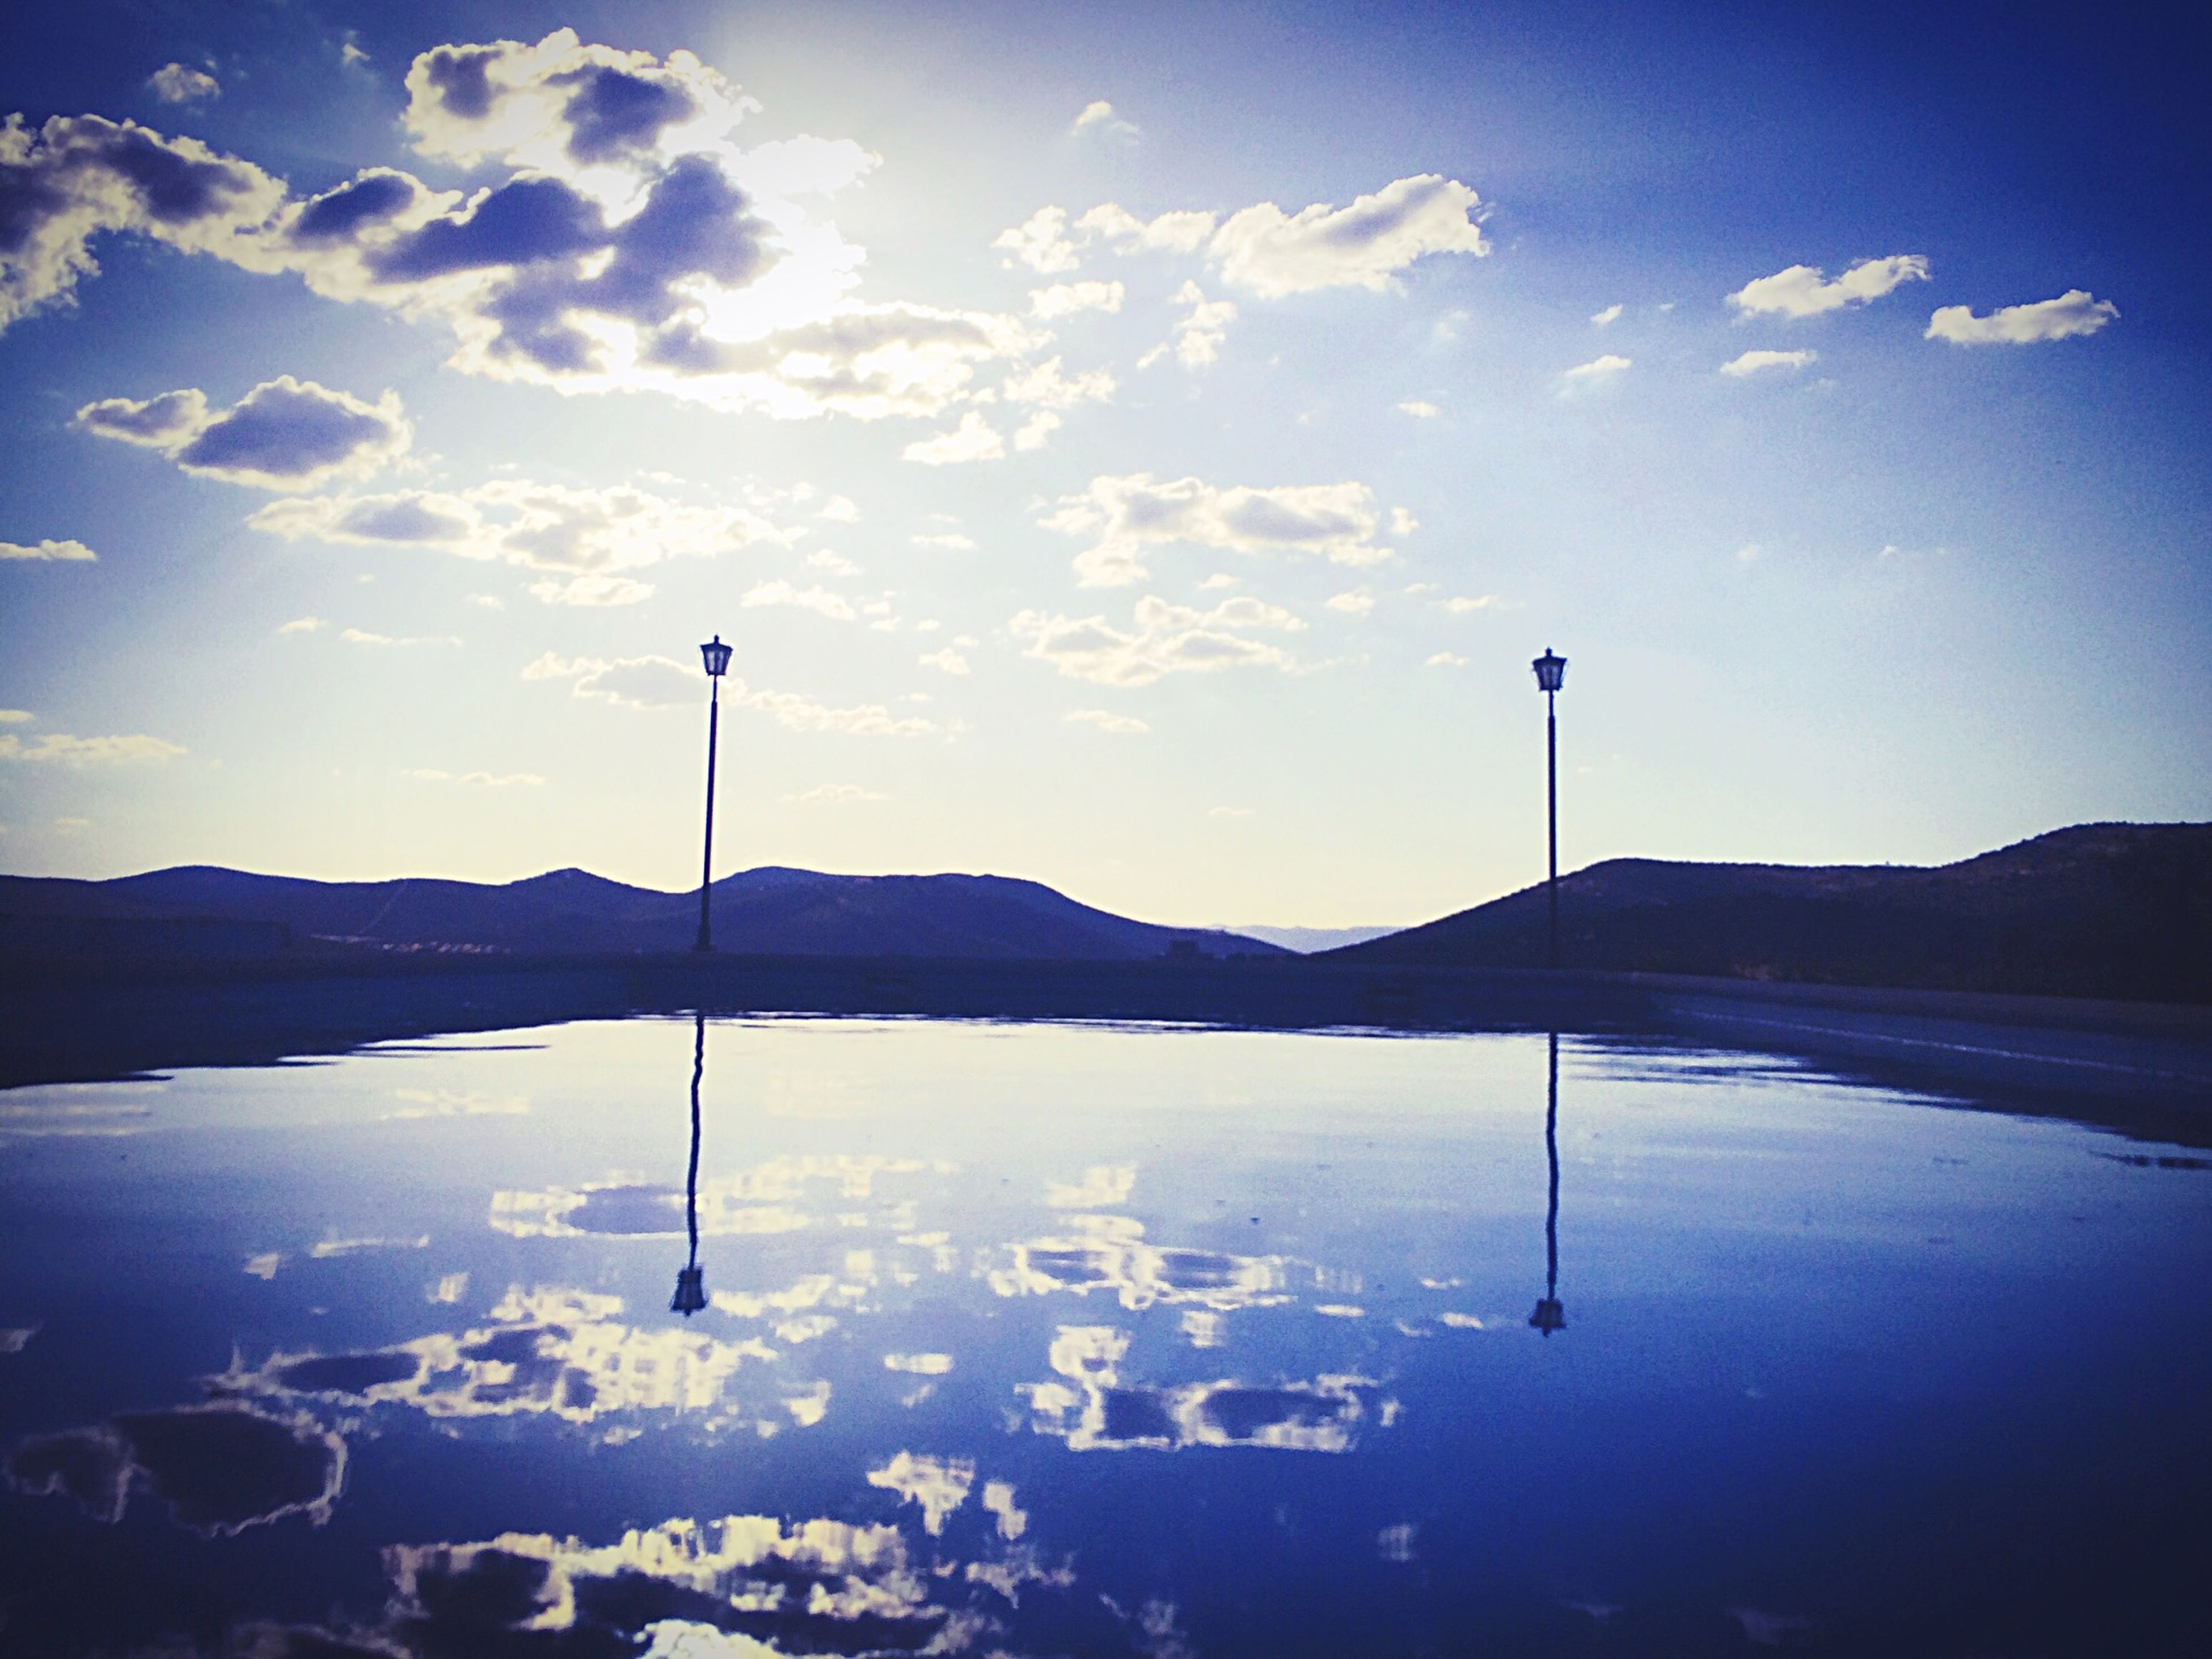 mountain, water, tranquility, tranquil scene, sky, lake, scenics, mountain range, beauty in nature, reflection, street light, nature, cloud - sky, blue, idyllic, cloud, outdoors, silhouette, no people, dusk